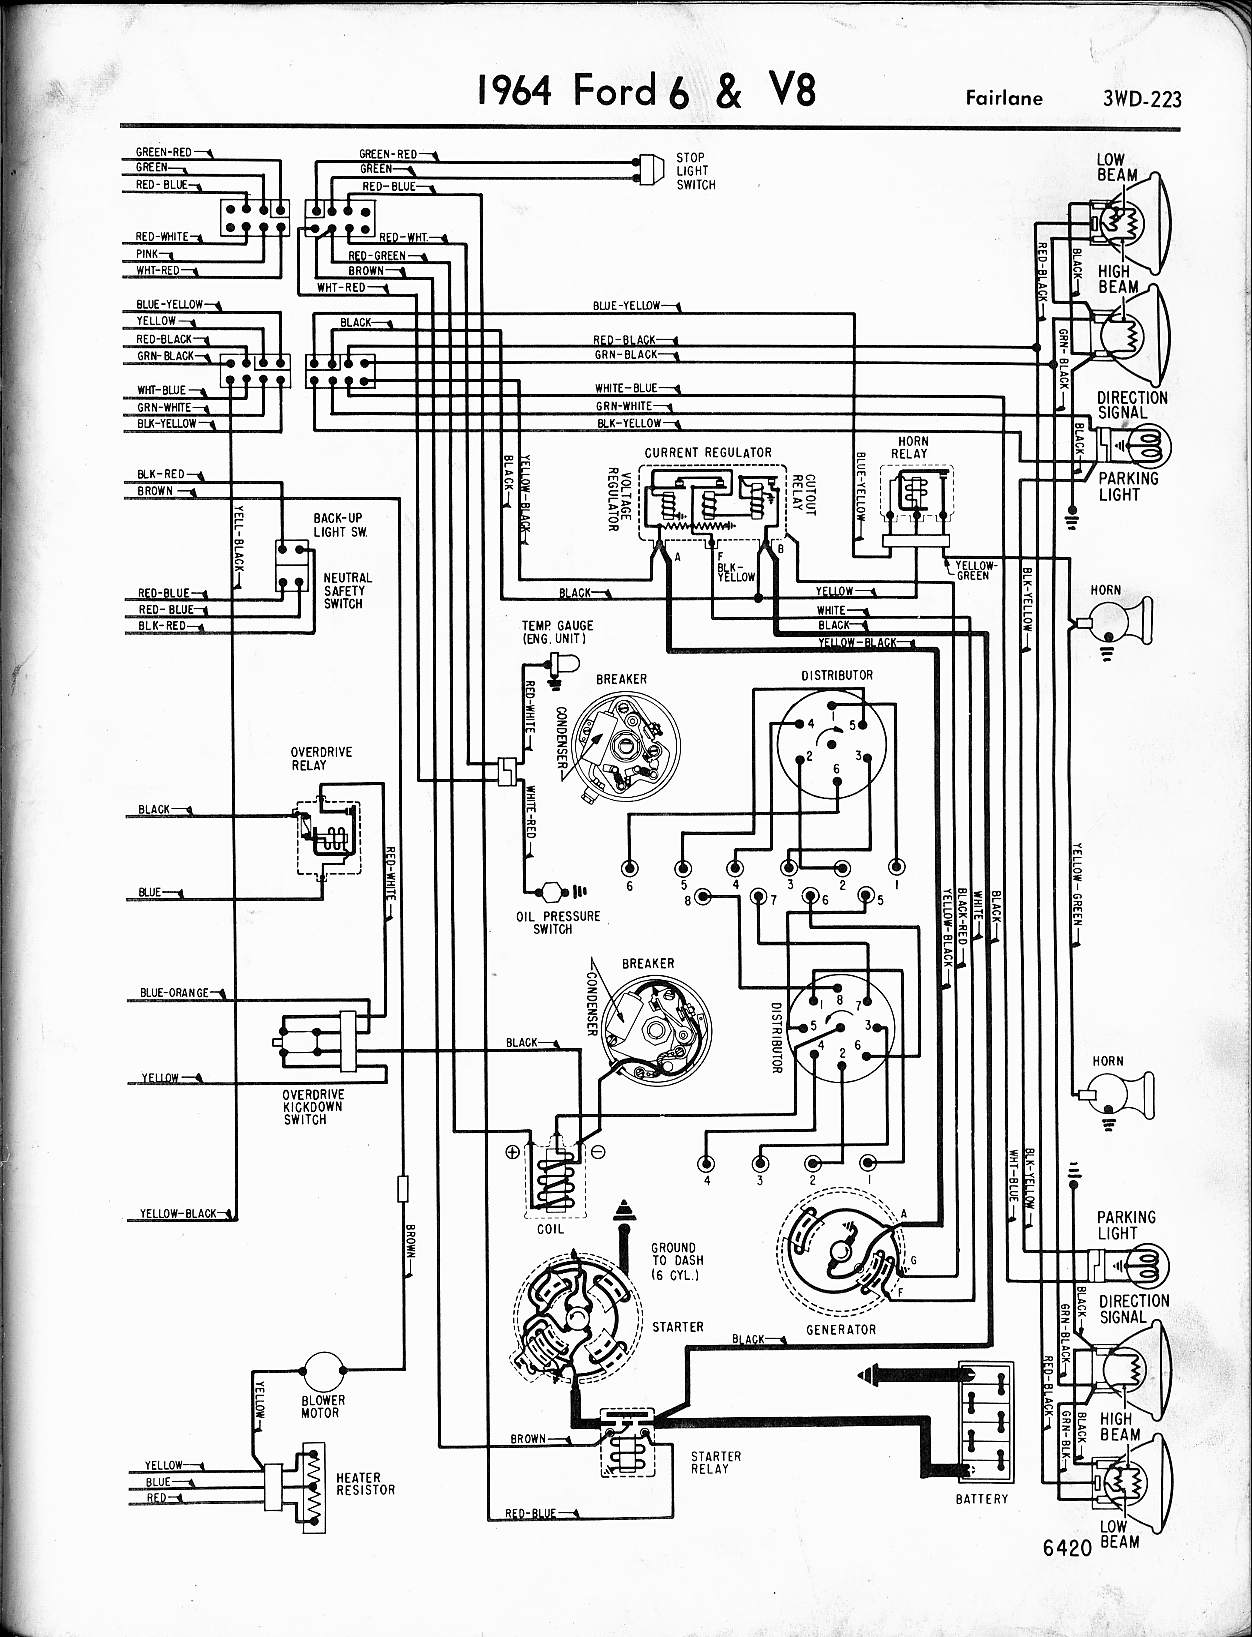 wiring diagram for 1966 ford ltd